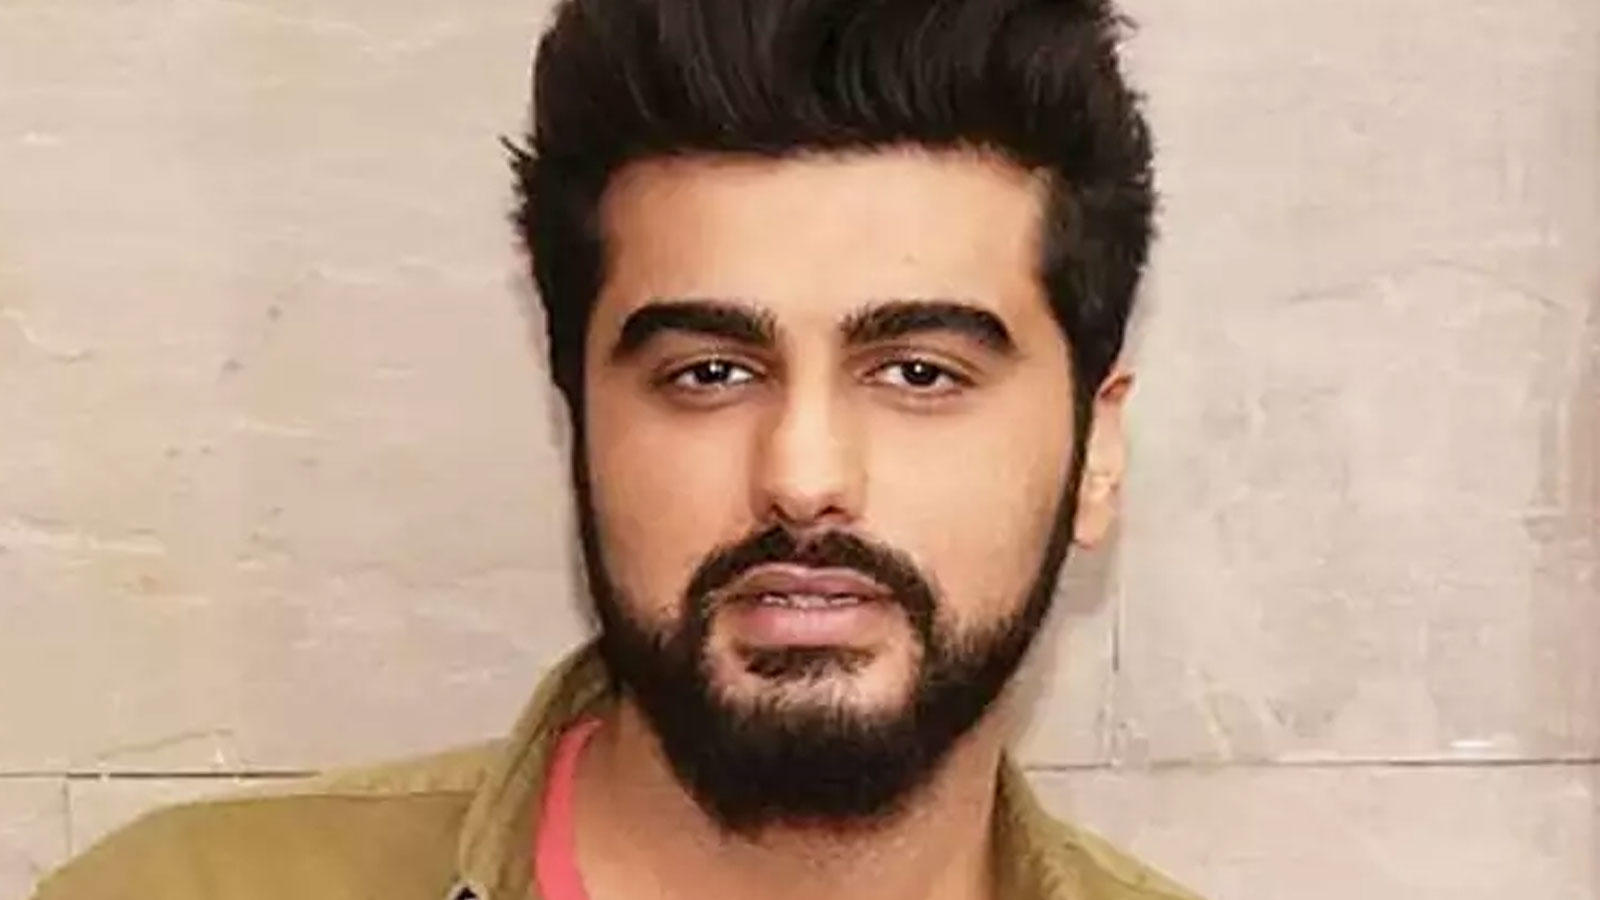 From Arjun Kapoor to Warina Hussain, B-Town celebs who created buzz on social media recently | Hindi Movie News – Bollywood – Times of India